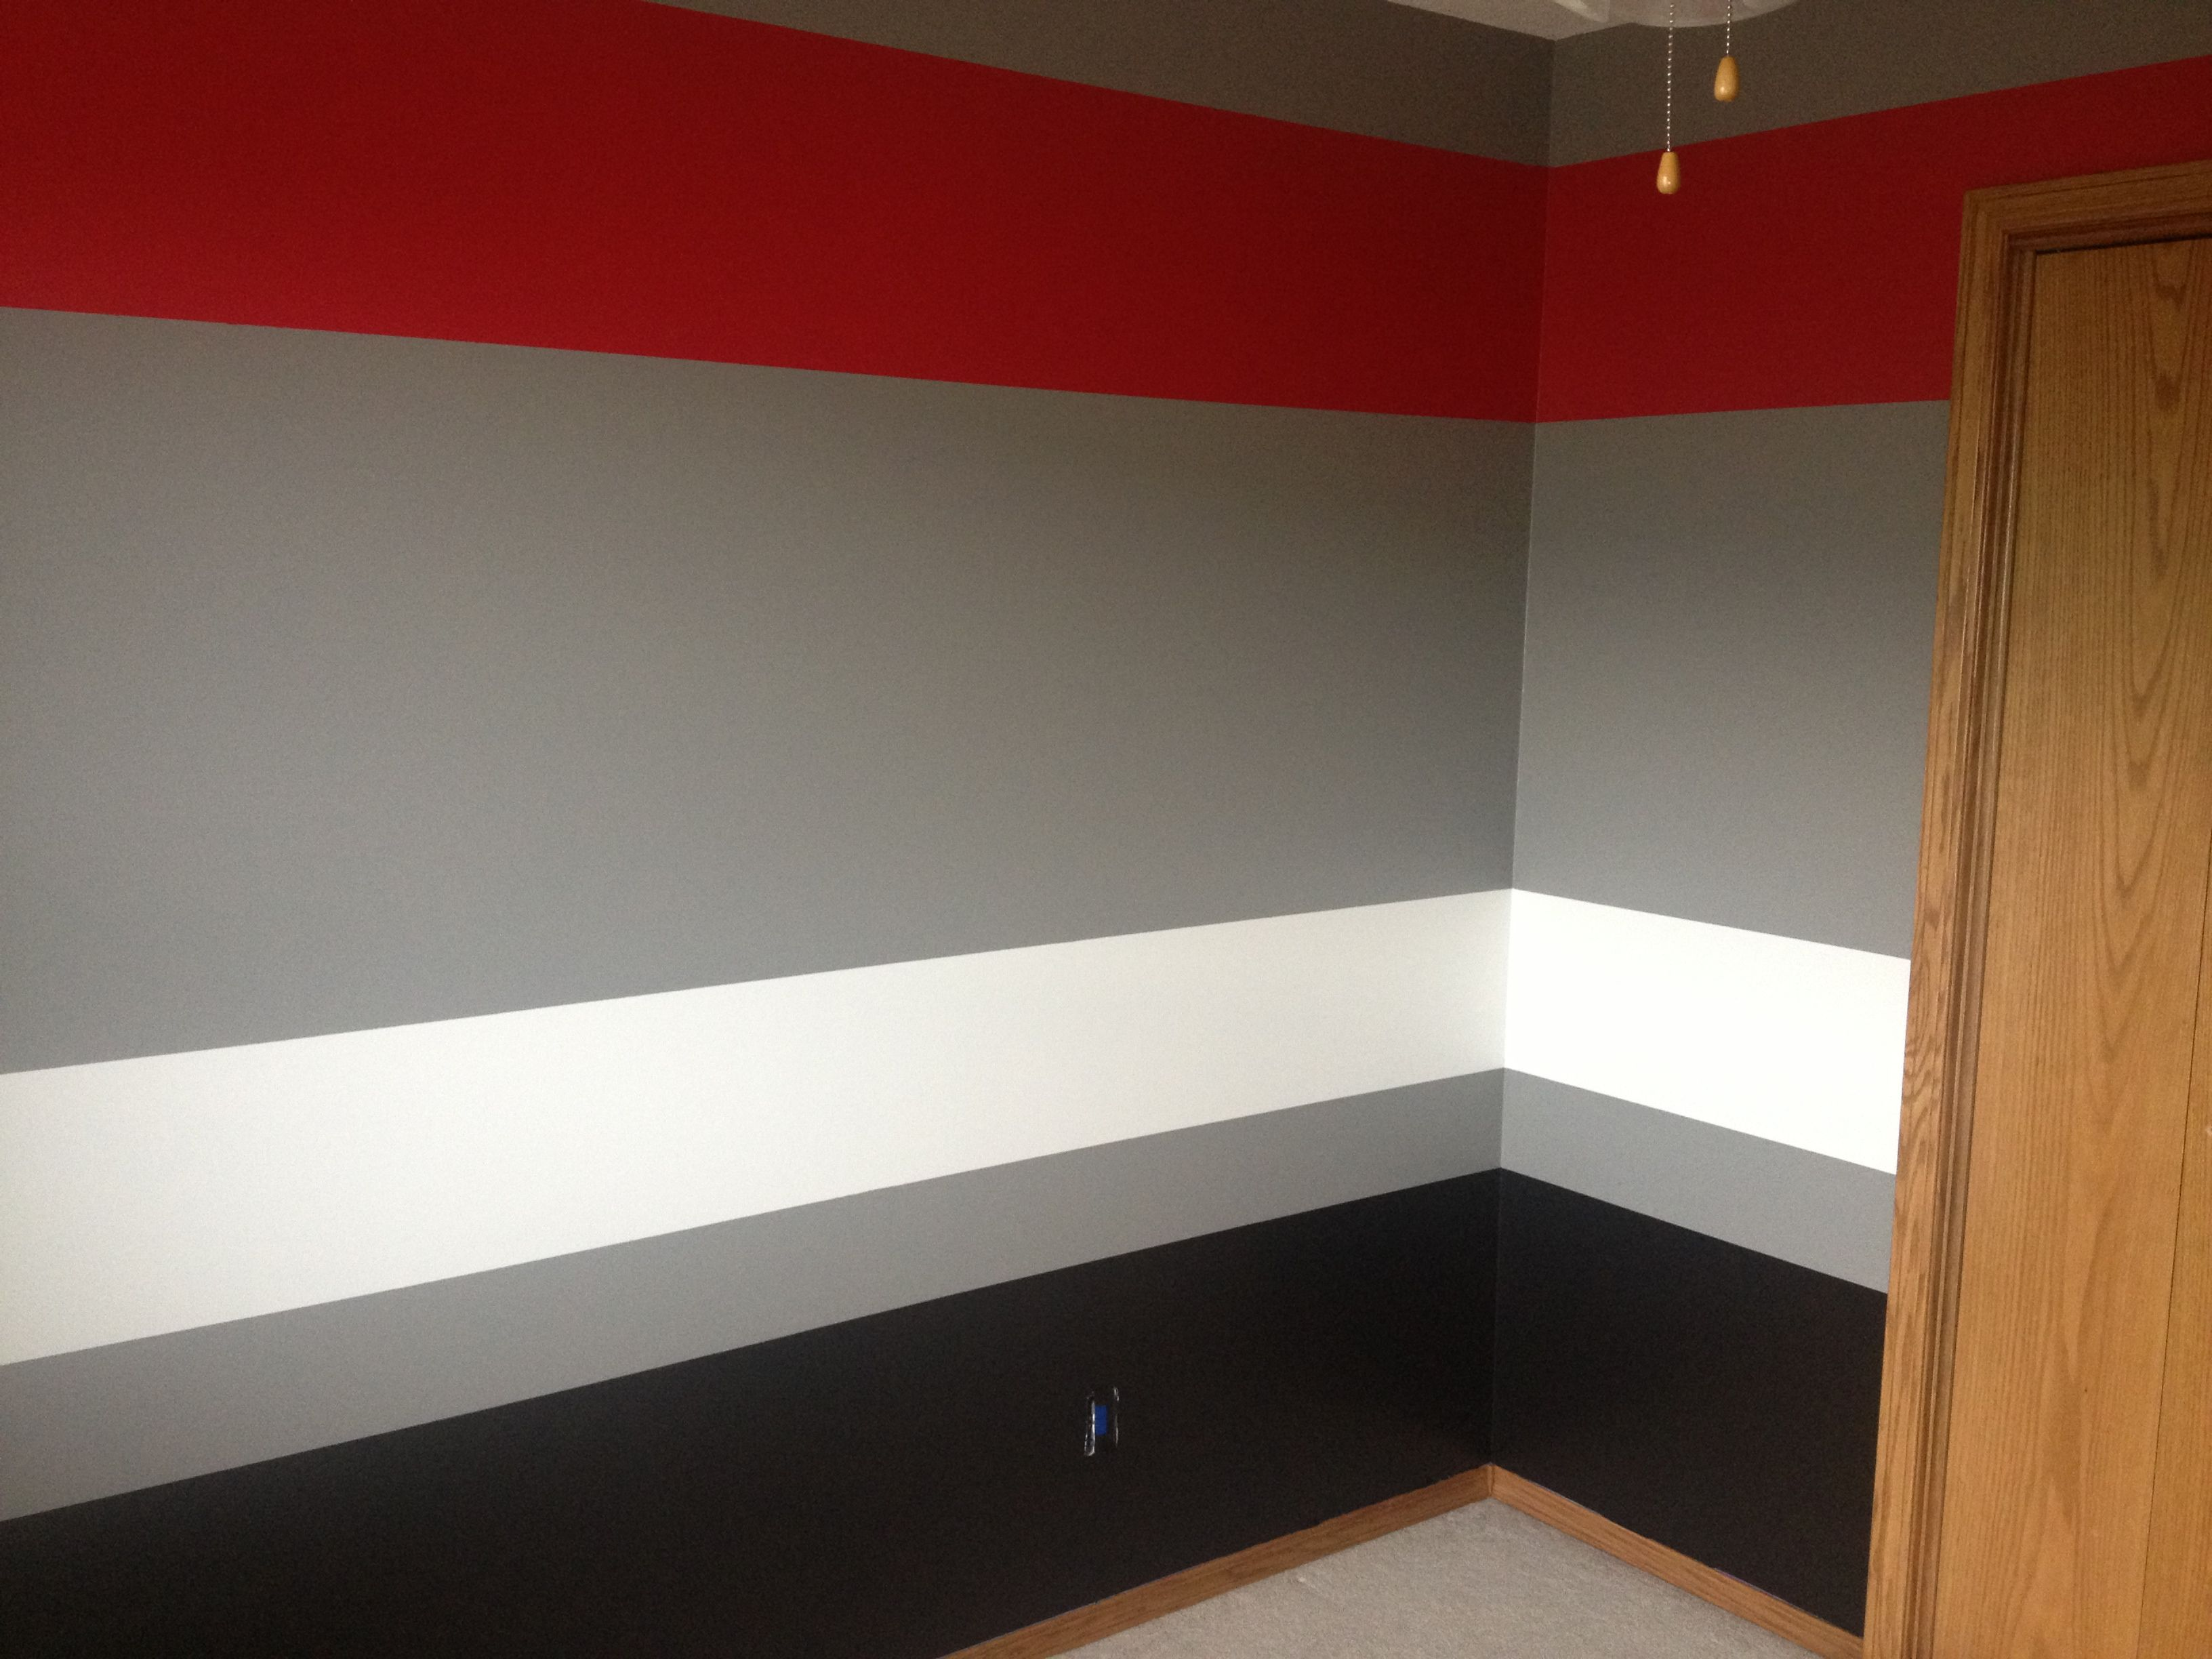 Painted room grey  red  white  black. Grey and Red Bedroom Theme   For a rock and roll bedroom theme